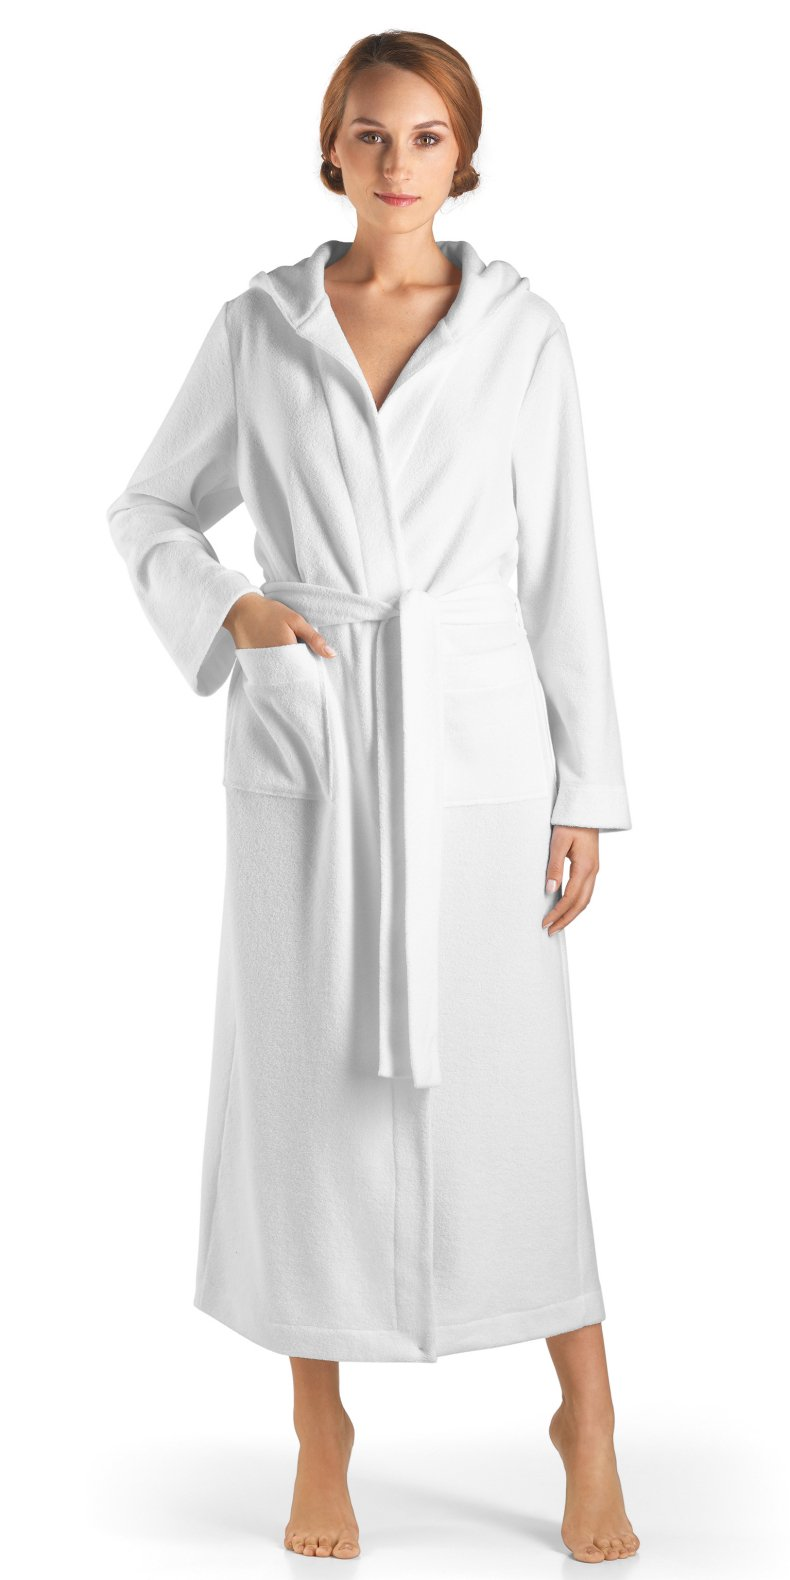 Hanro Women's Long Plush Robe with Hood, White, Small by HANRO (Image #1)